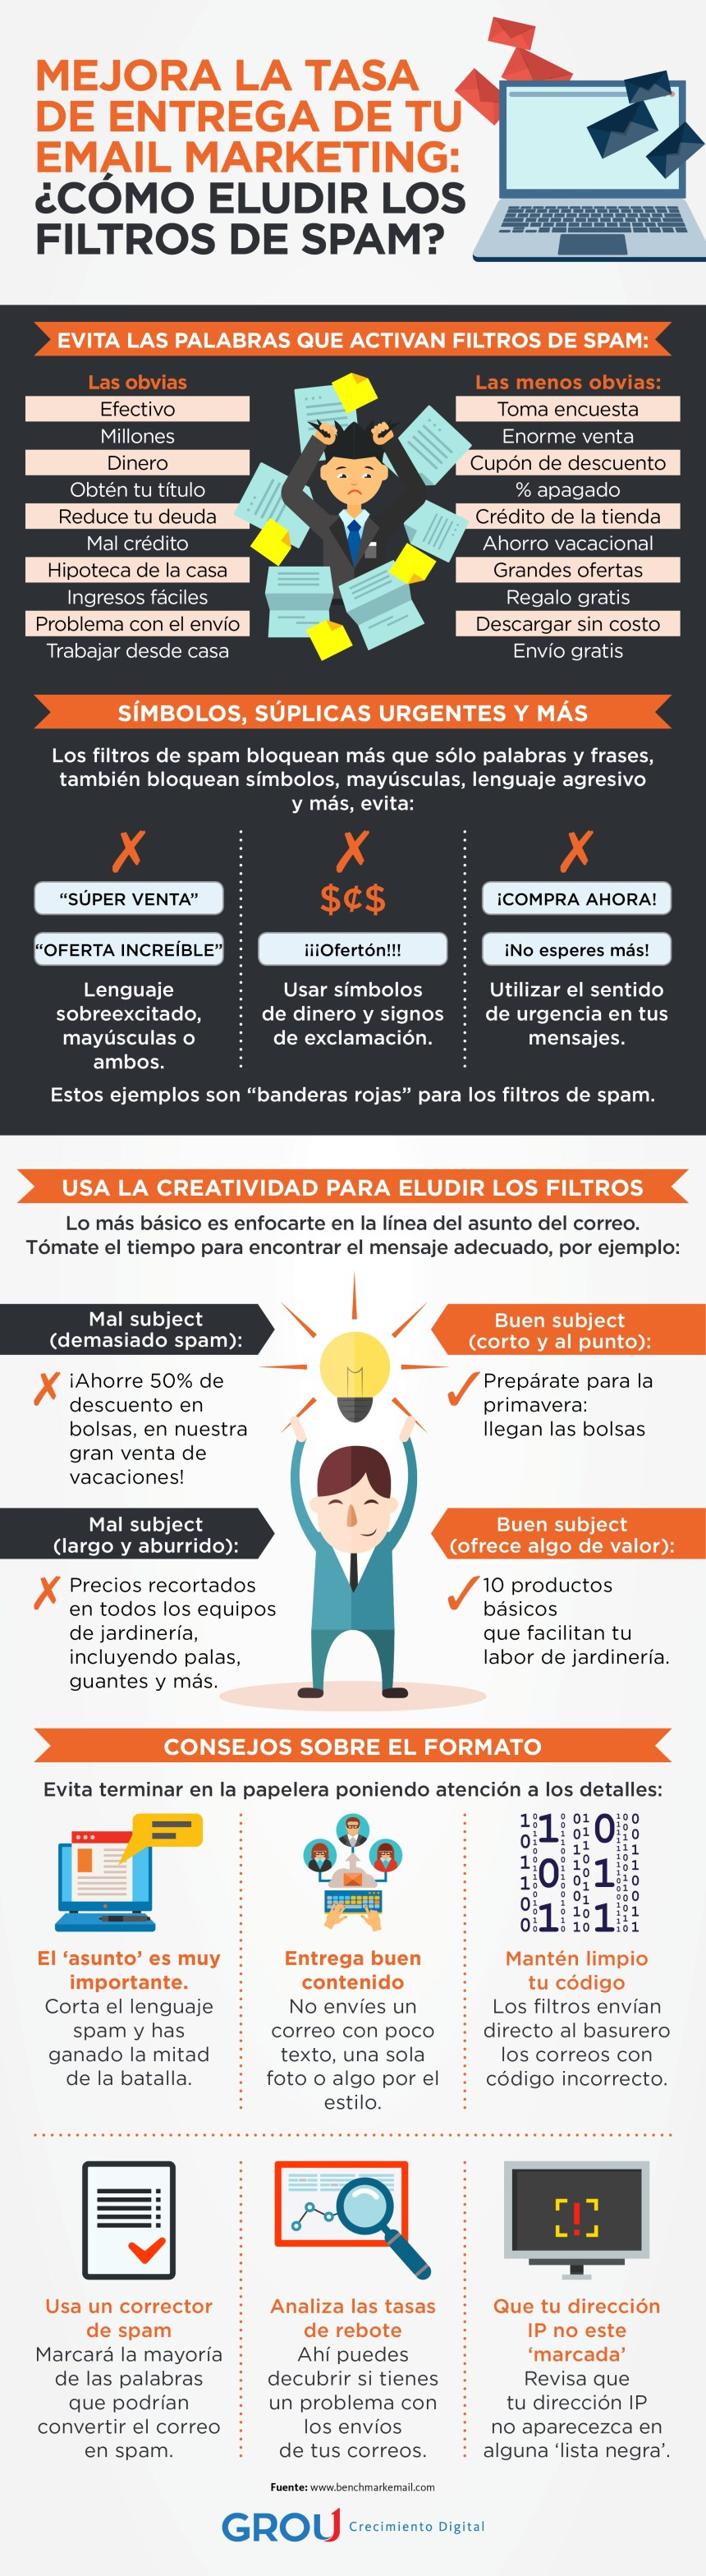 Email marketing: cómo eludir los filtros de spam